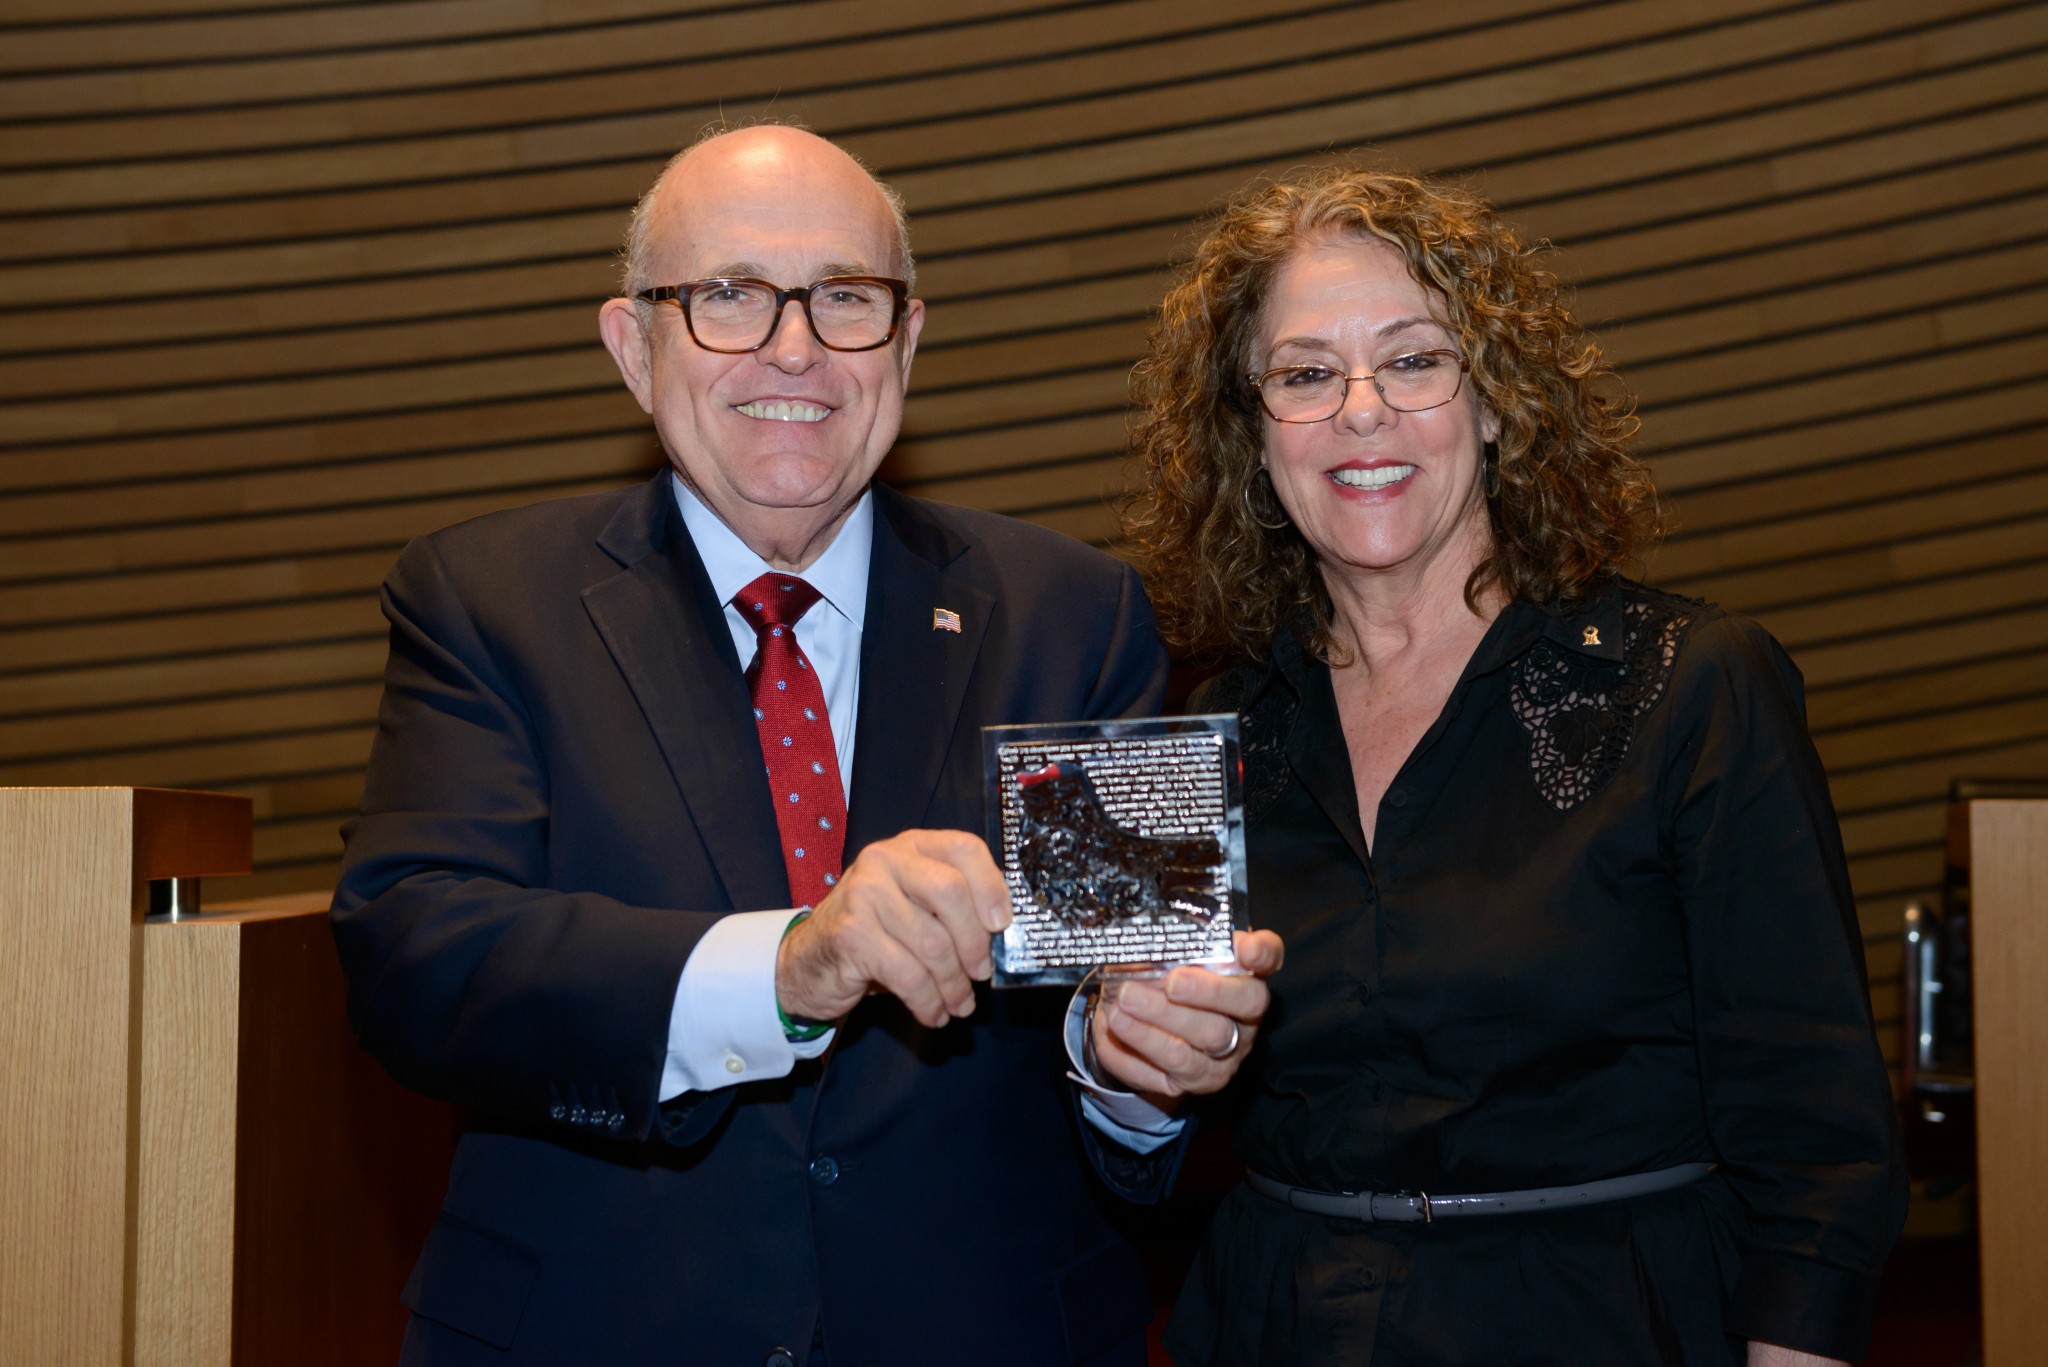 Former New York City Mayor Rudolph Giuliani holds a dove of peace plaque given to him by BGU President Prof. Rivka Carmi. Photo by Dani Machlis/BGU